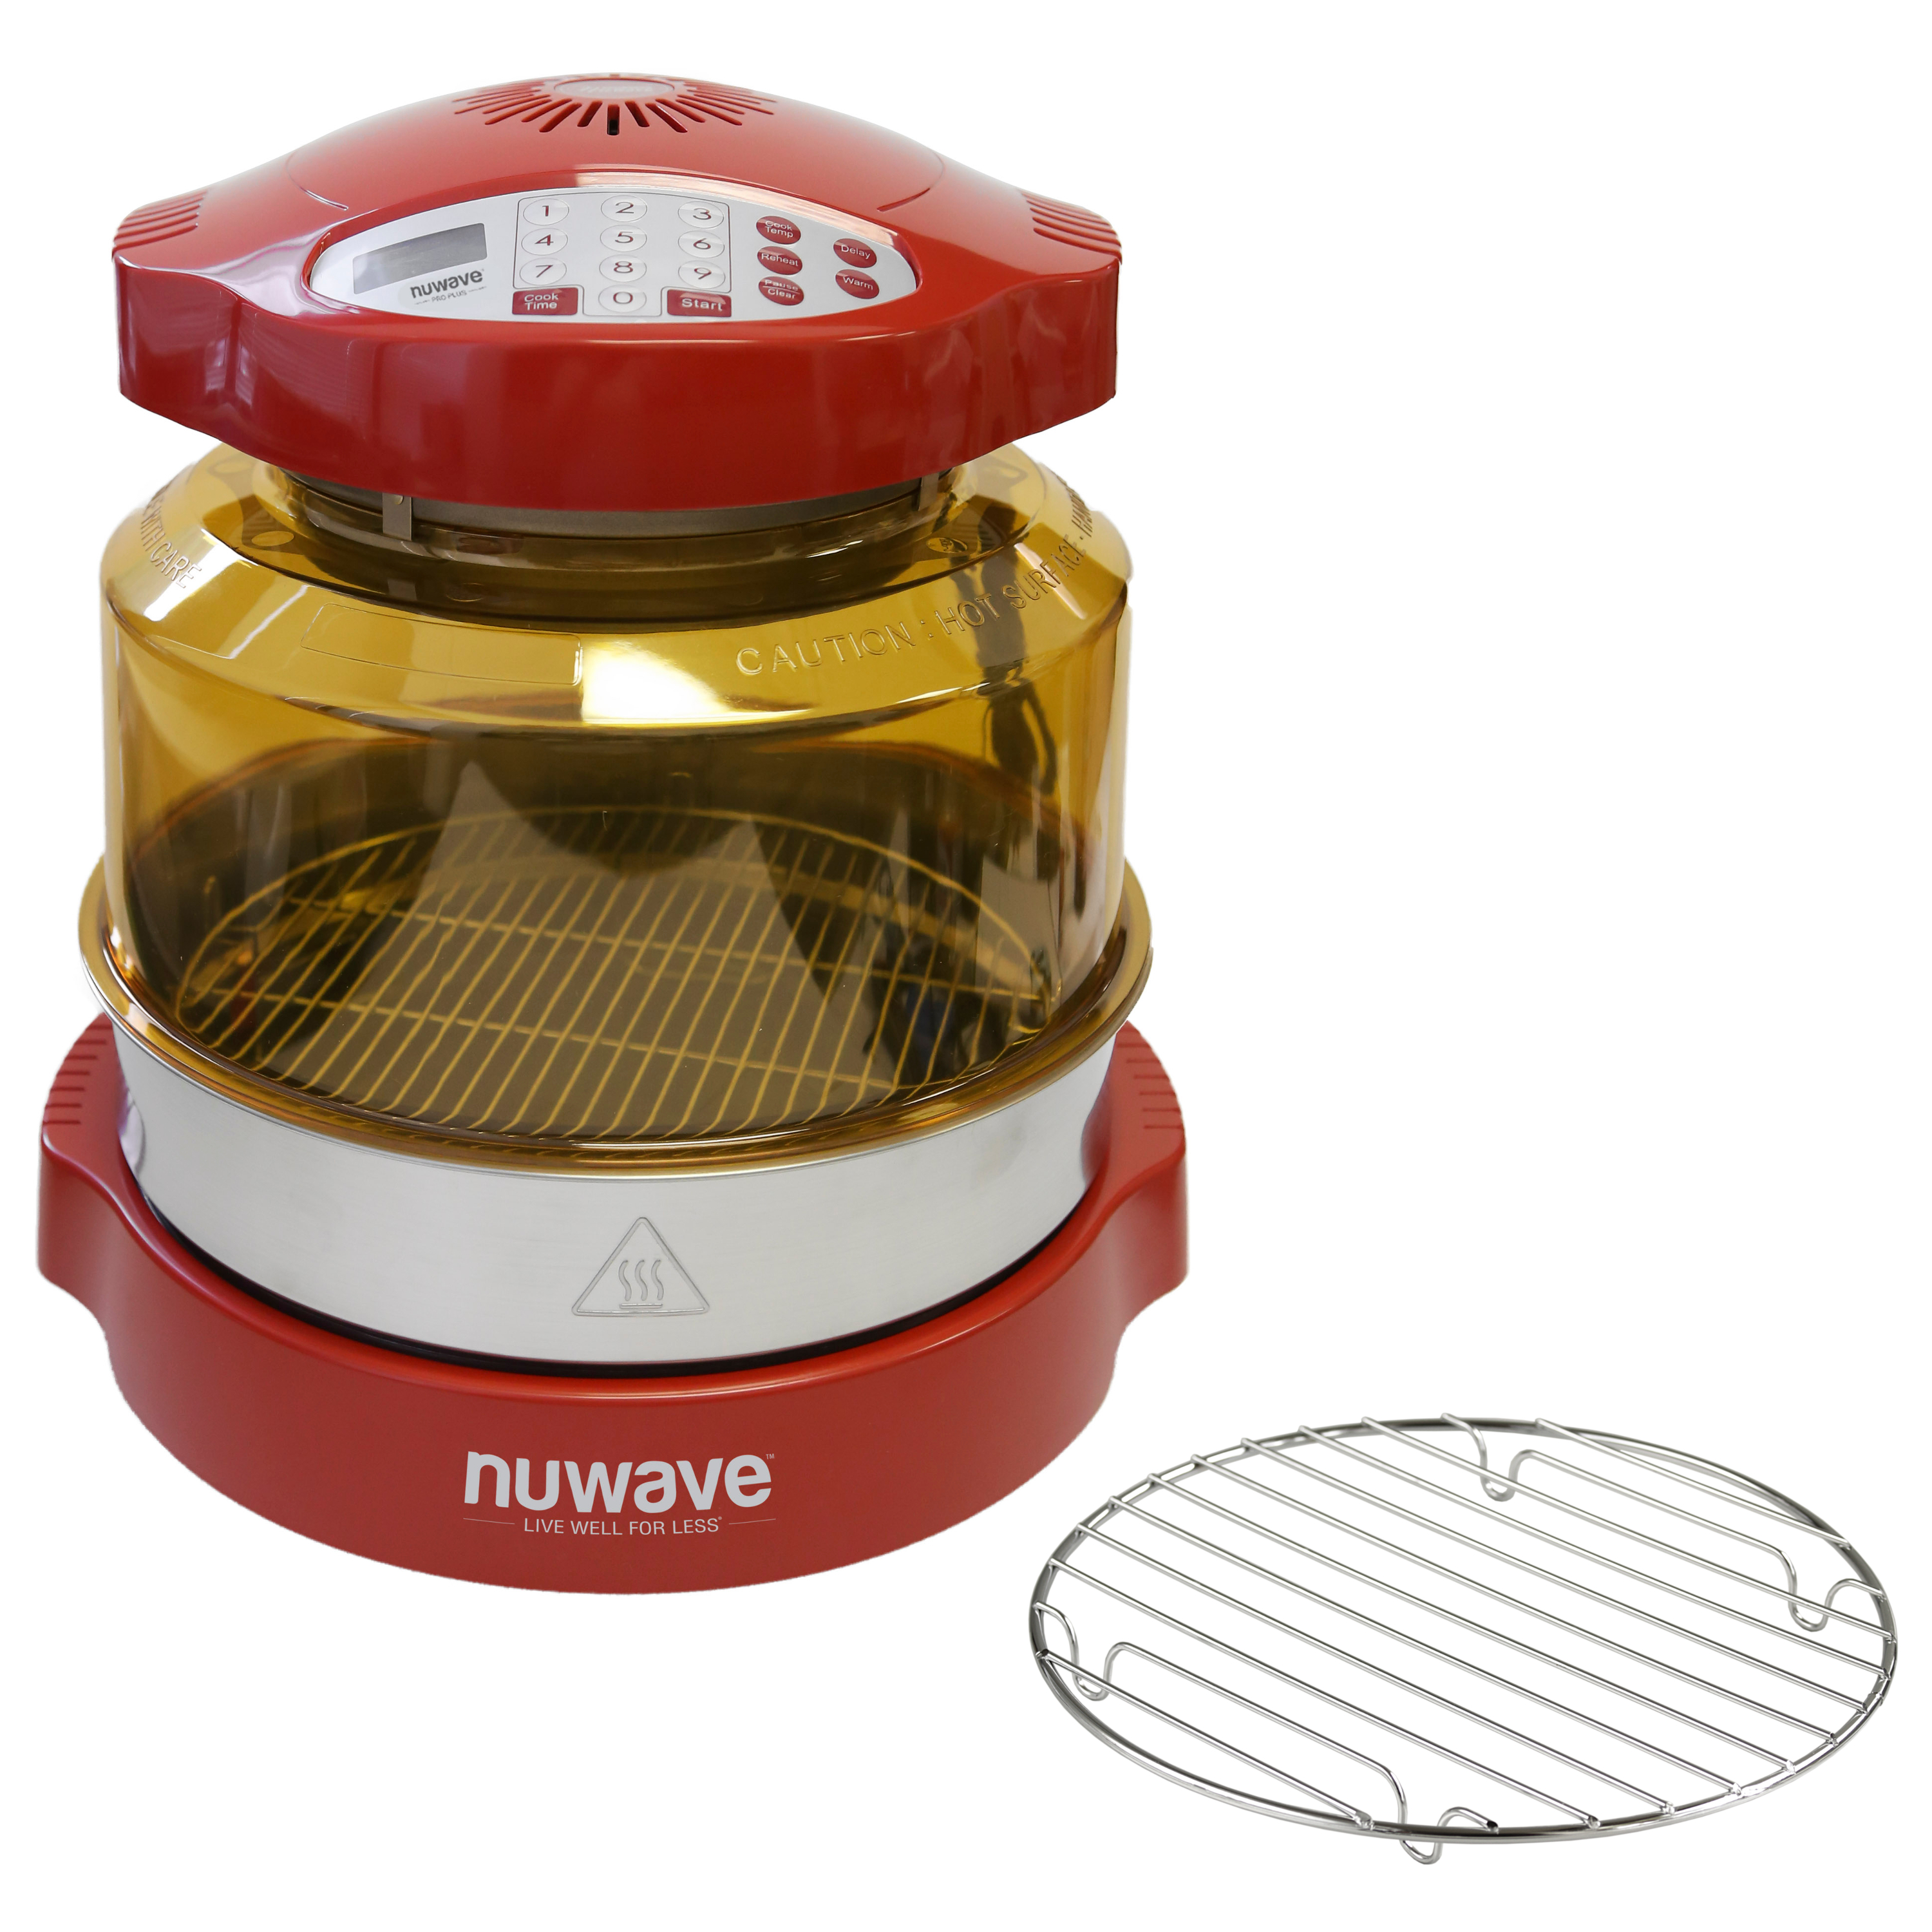 Nu-Wave Oven Red Pro Plus with Stainless Steel Extender R...